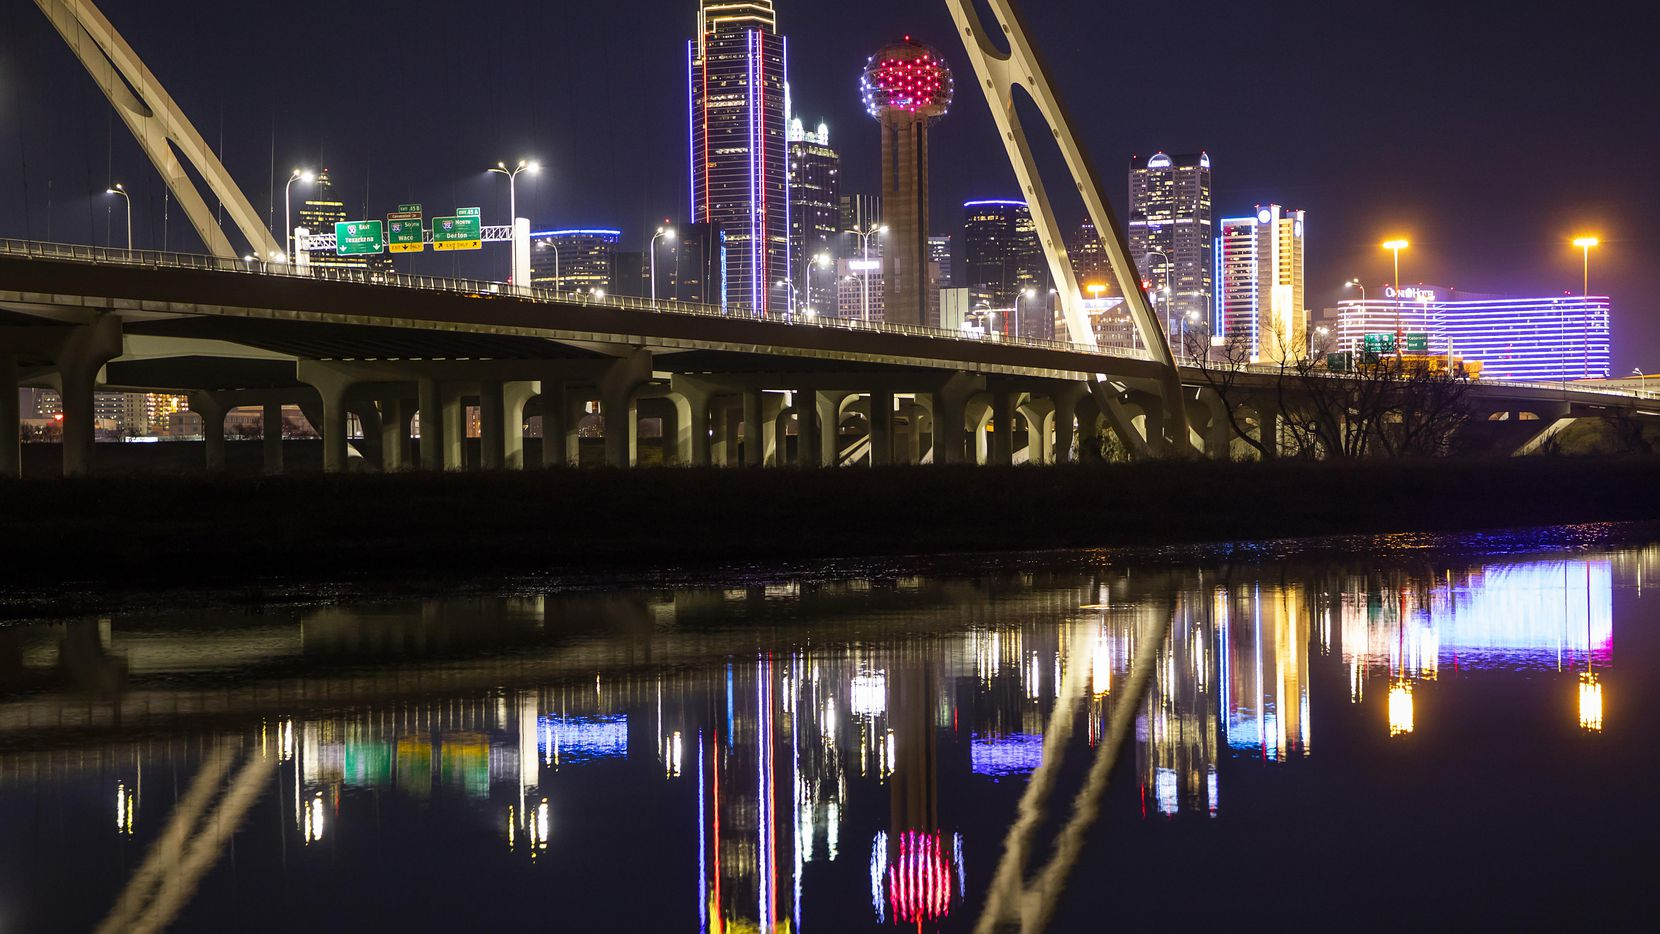 The downtown Dallas skyline is seen behind the Margaret McDermott Bridge.